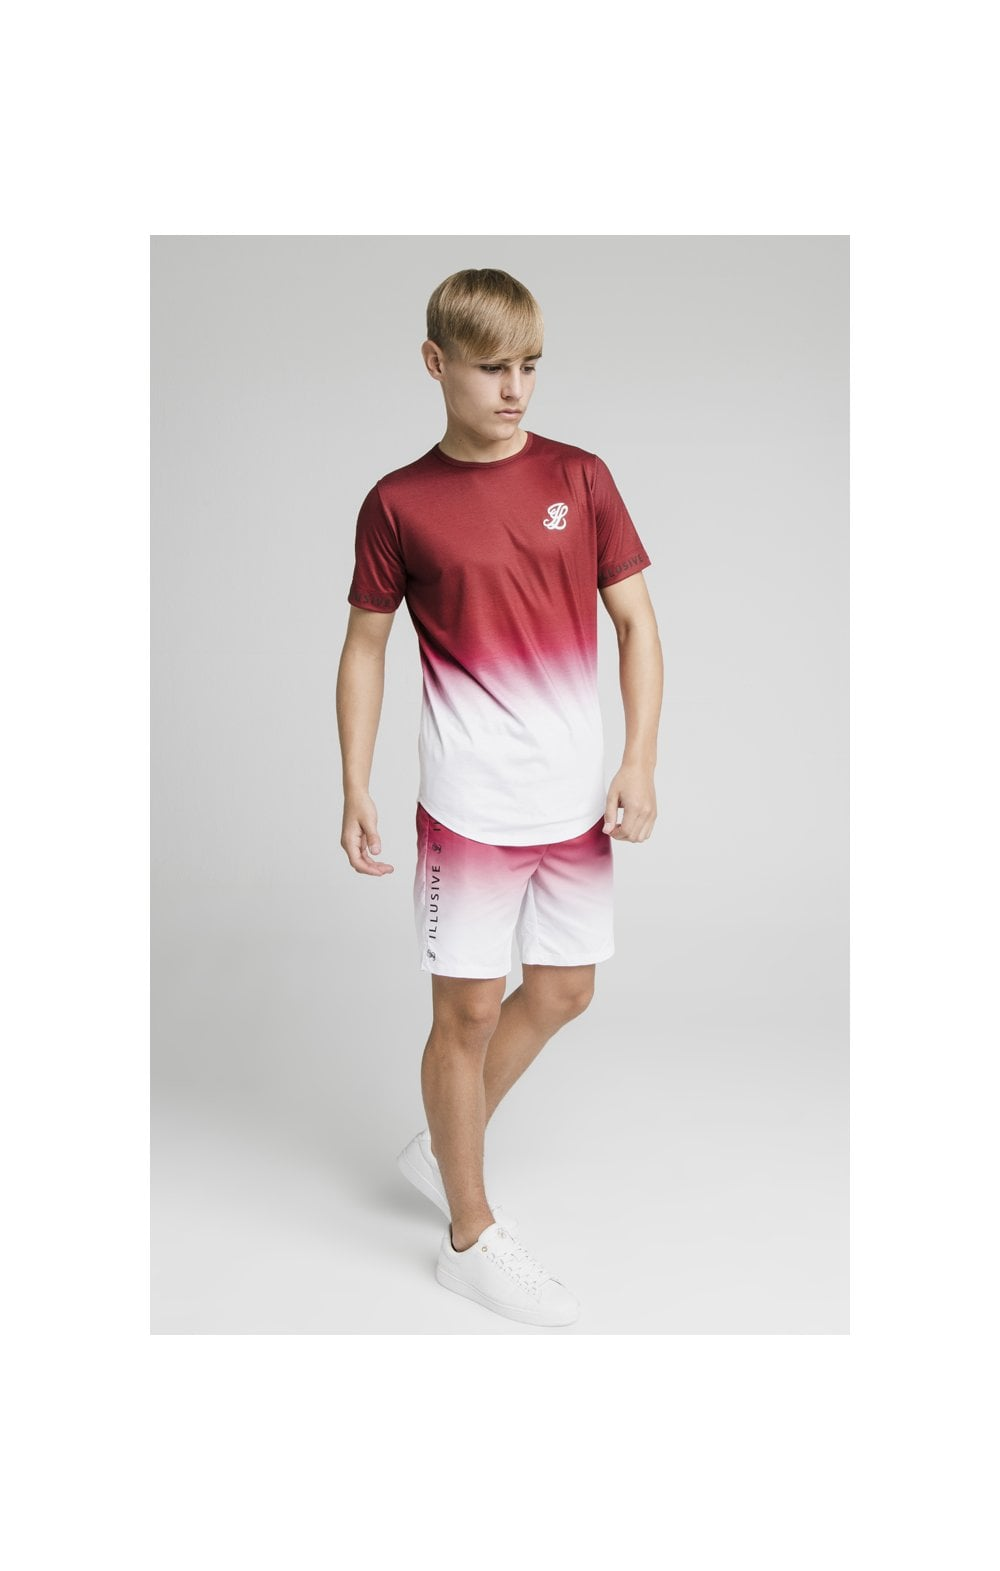 Illusive London Fade Swim Shorts - Red & White (6)